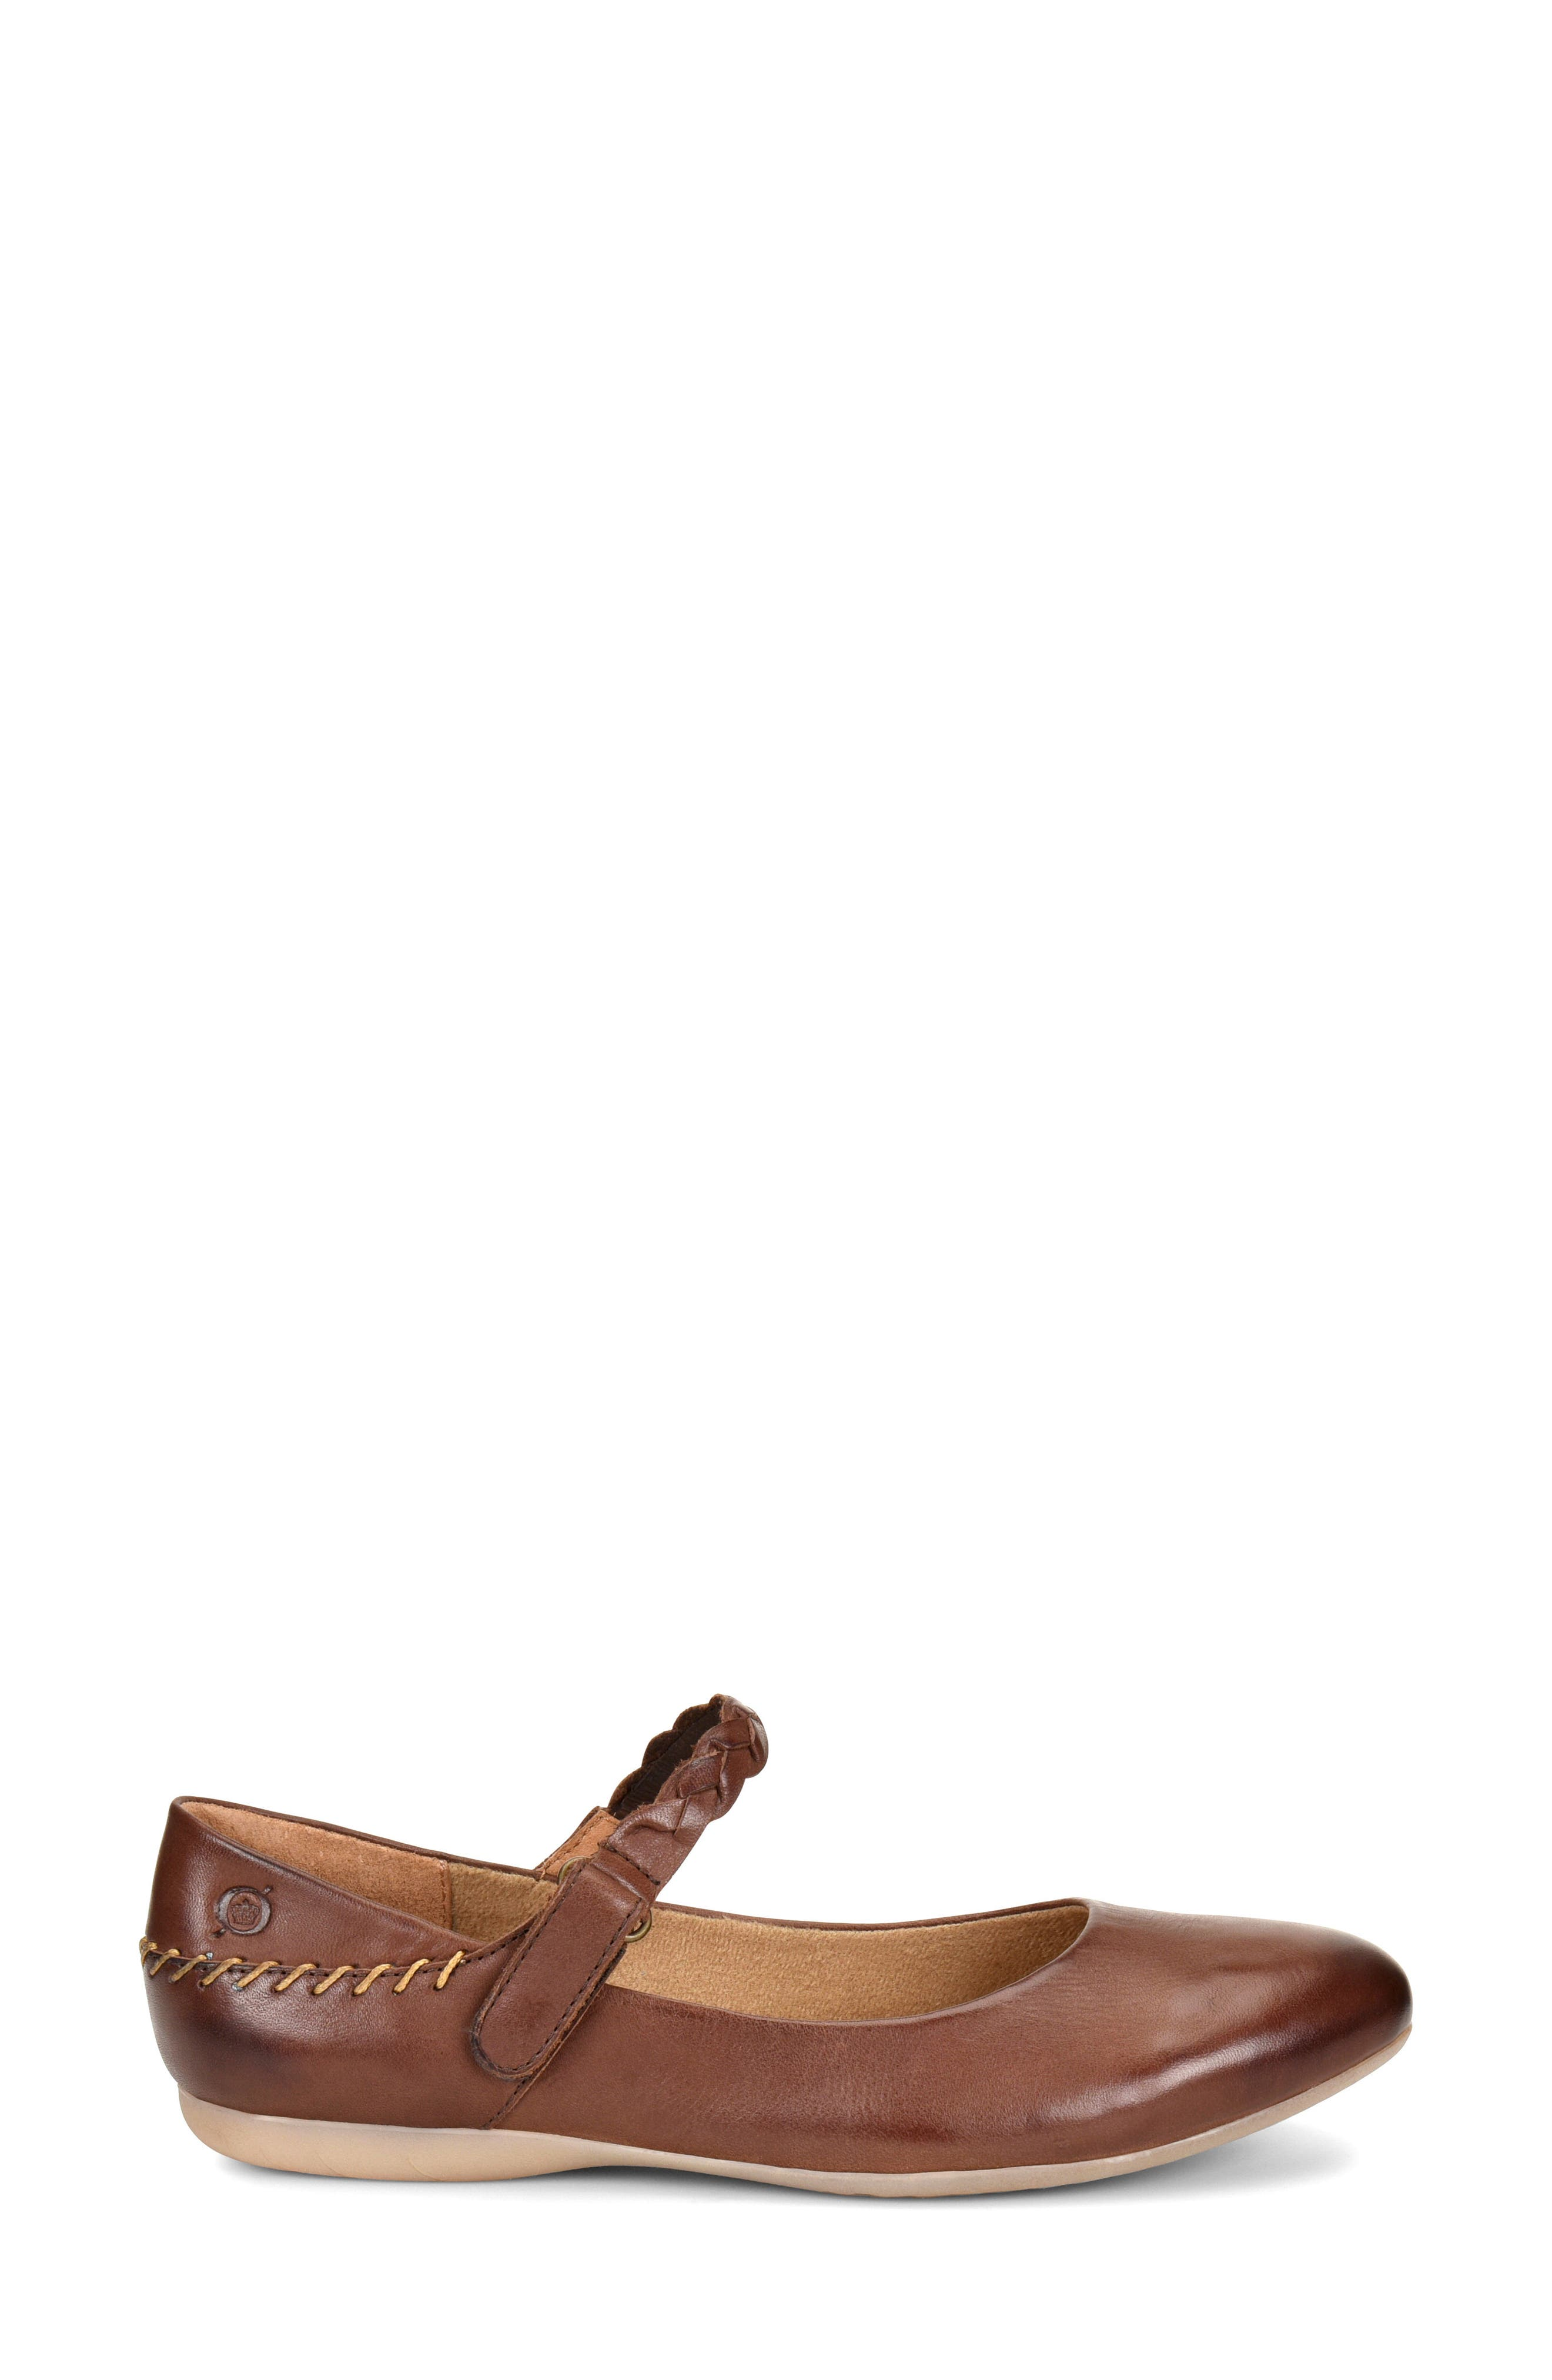 Mary Jane Flat,                             Alternate thumbnail 3, color,                             Brown Leather